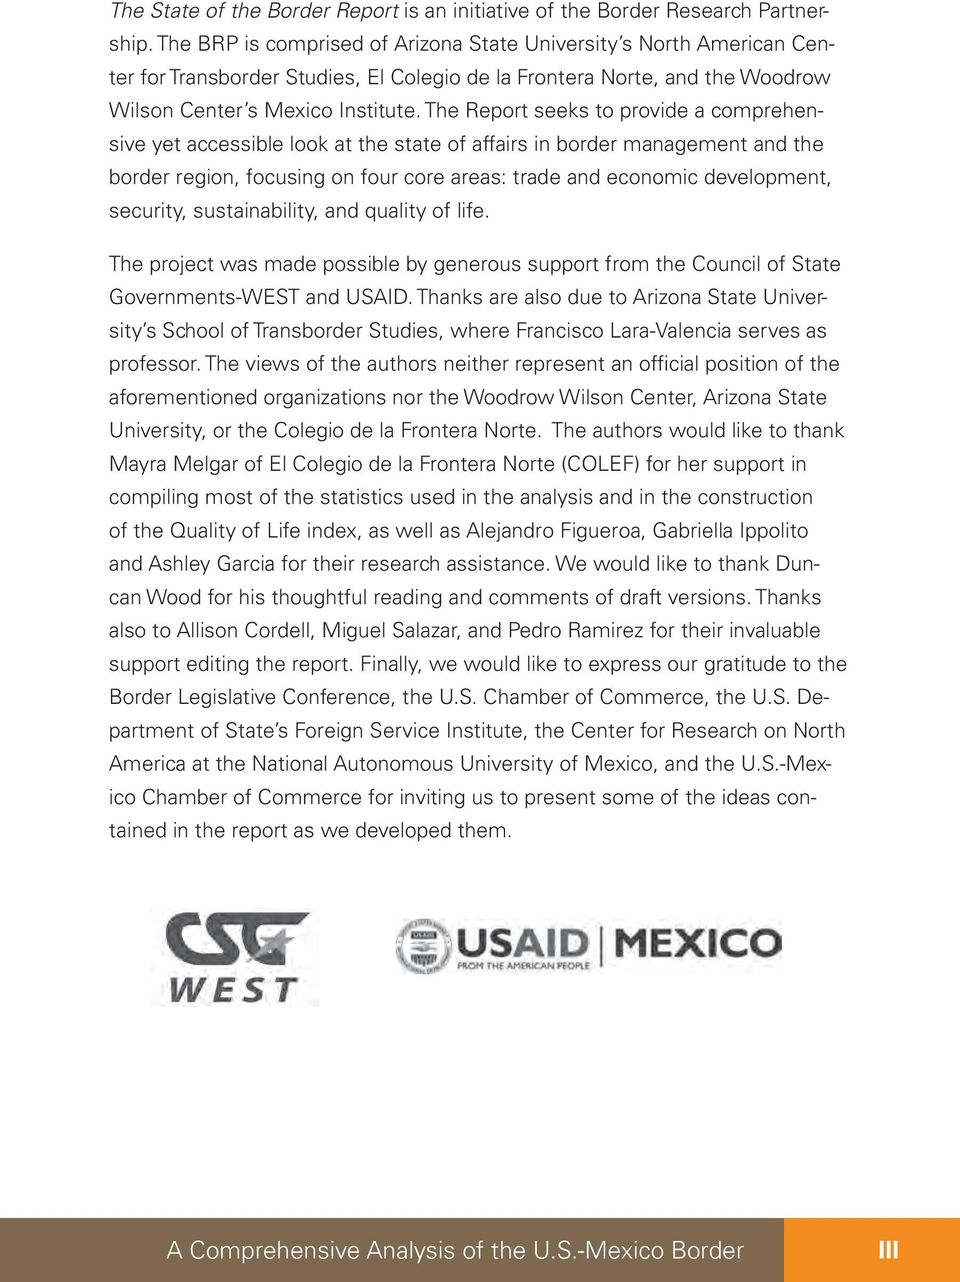 The Report seeks to provide a comprehensive yet accessible look at the state of affairs in border management and the border region, focusing on four core areas: trade and economic development,